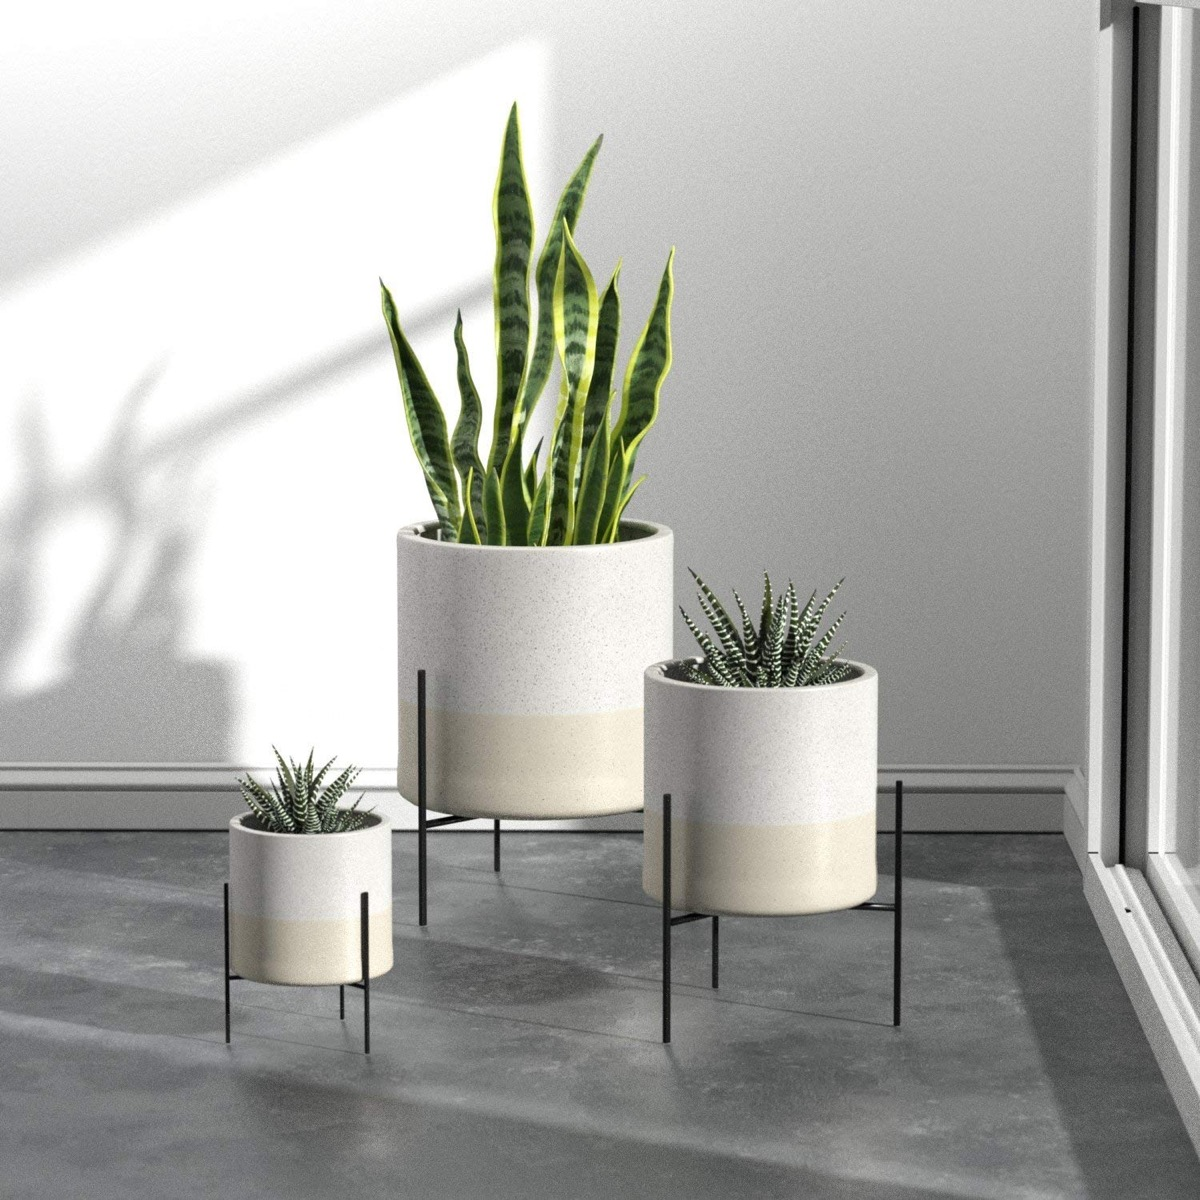 Product Of The Week Beautiful Mid Century Style Ceramic Planters